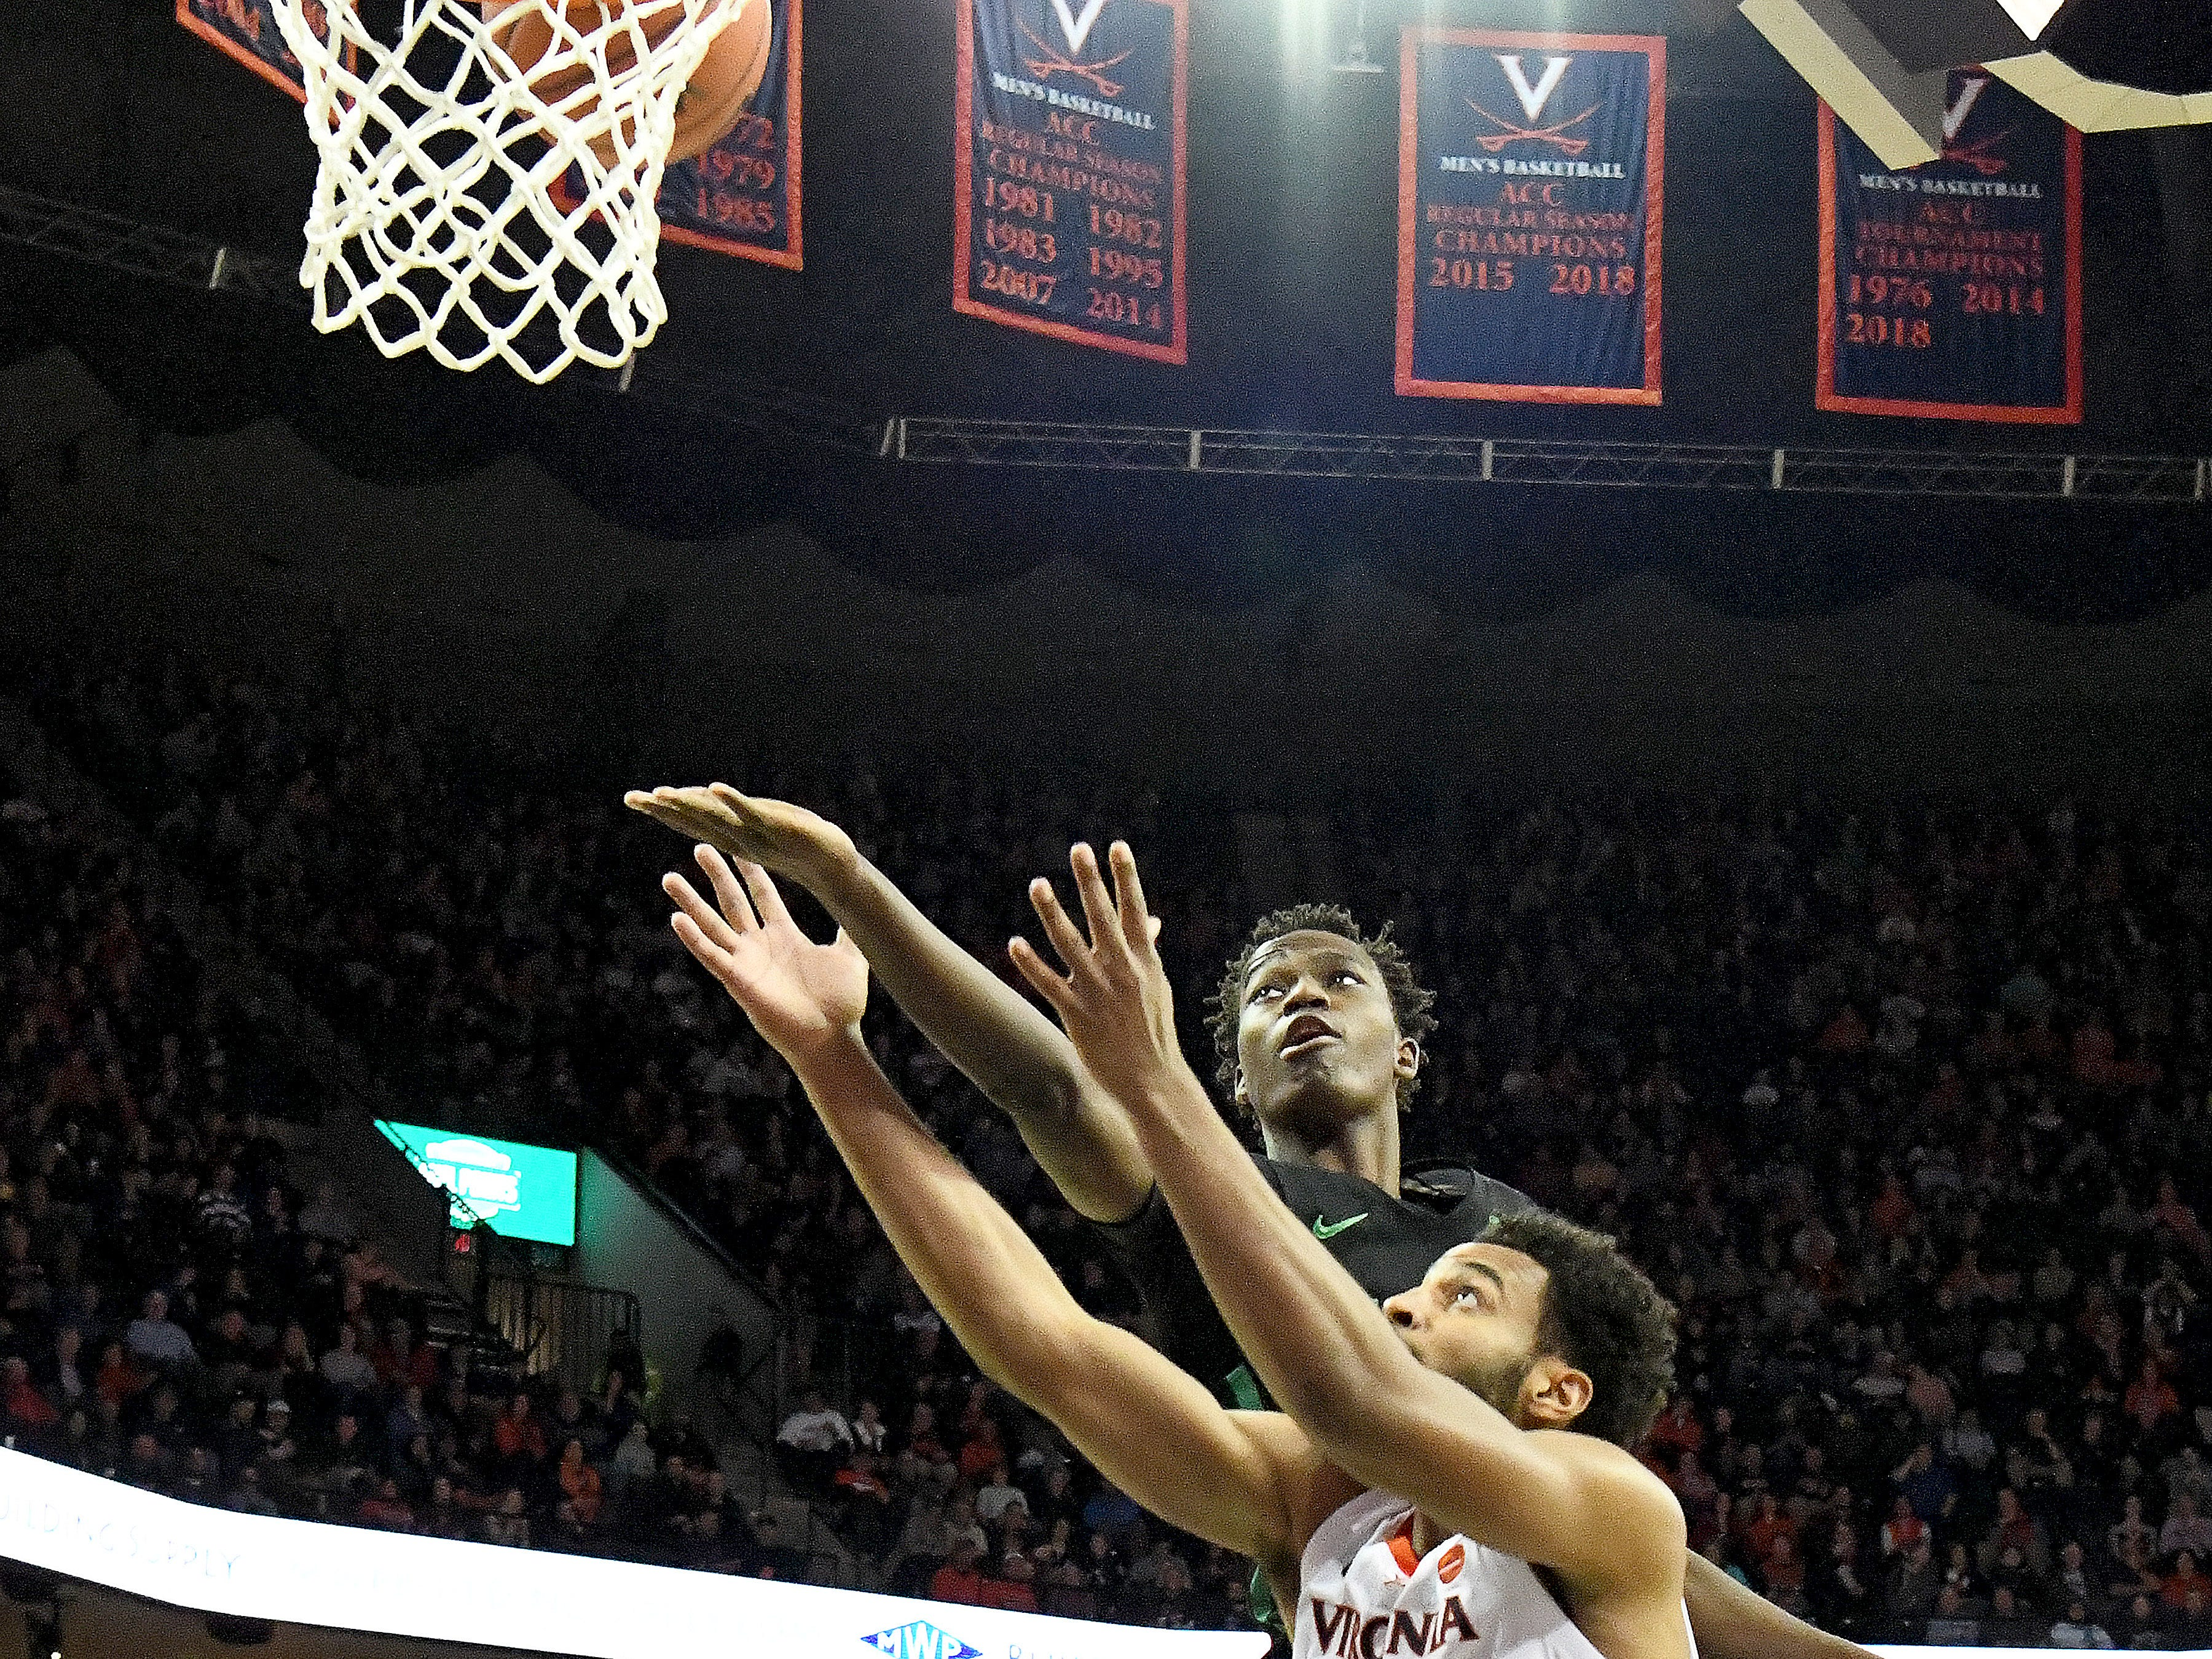 Marshall's Darius George, former R.E. Lee star, tries to reach the basket with the ball as he shoots during their game against University of Virginia, played at the John Paul Jones Arena on Dec. 31, 2016.